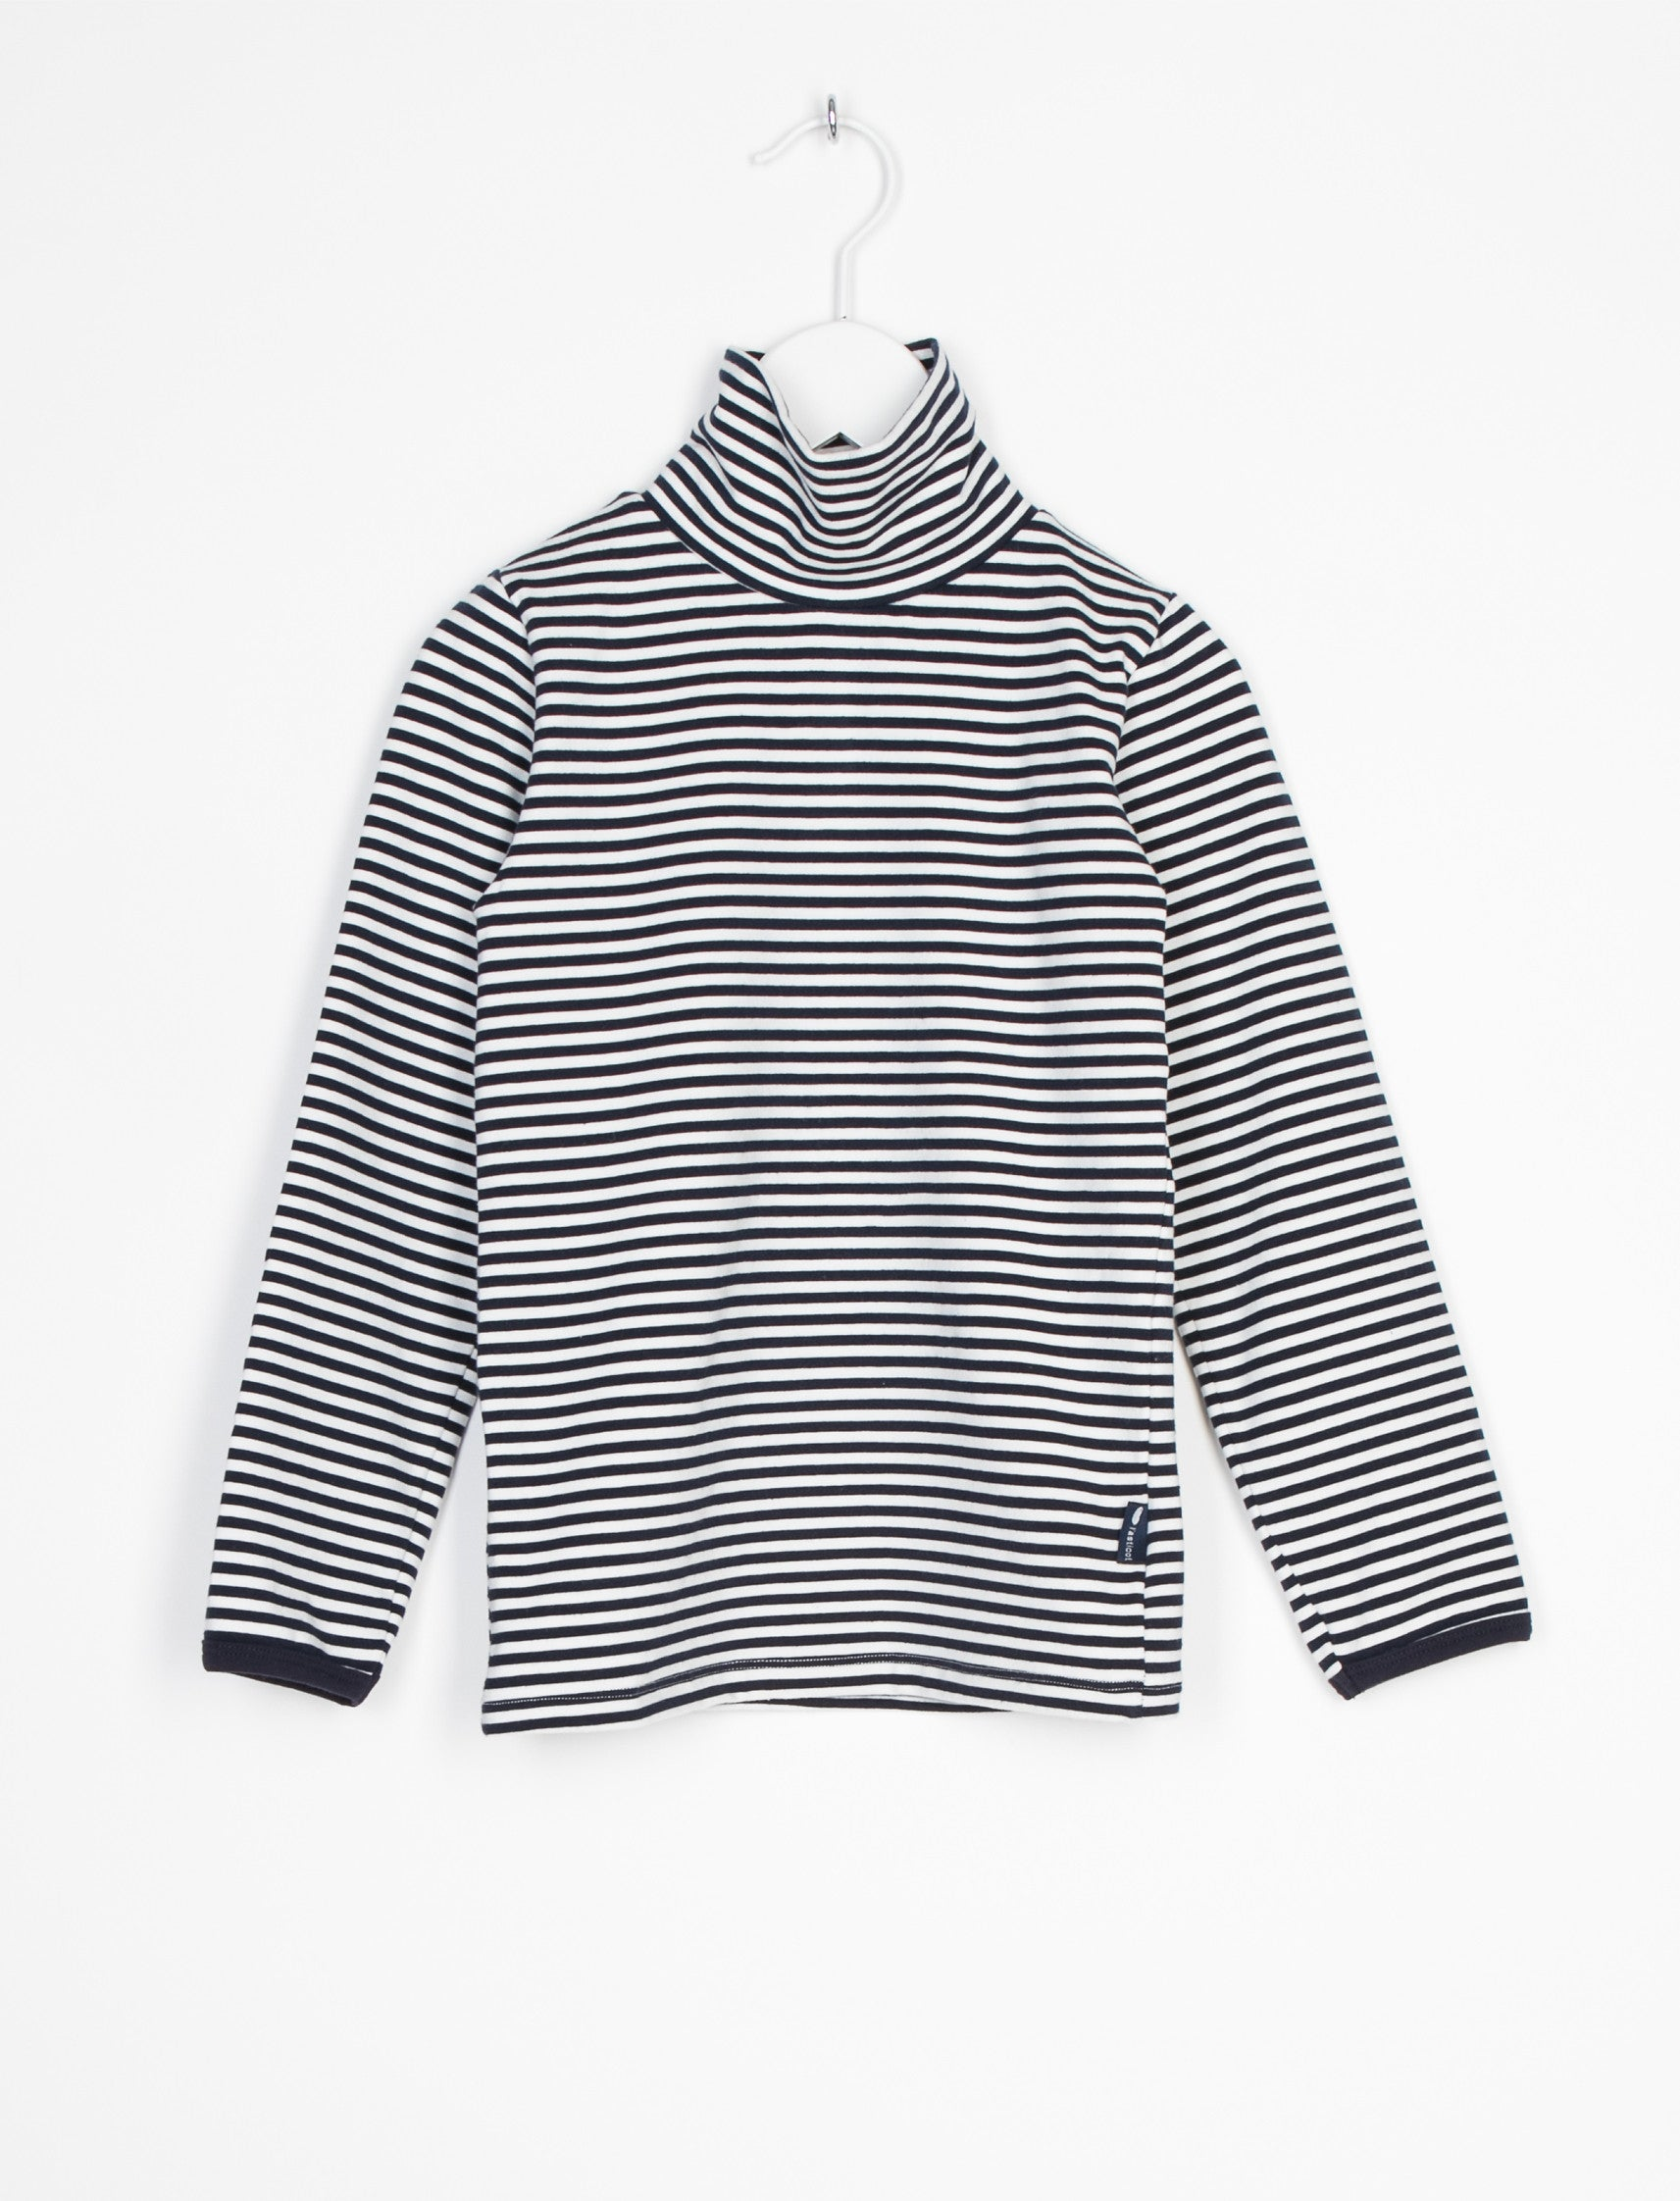 L'ASTICOT ORGANIC COTTON TURTLENECK BLUE STRIPES